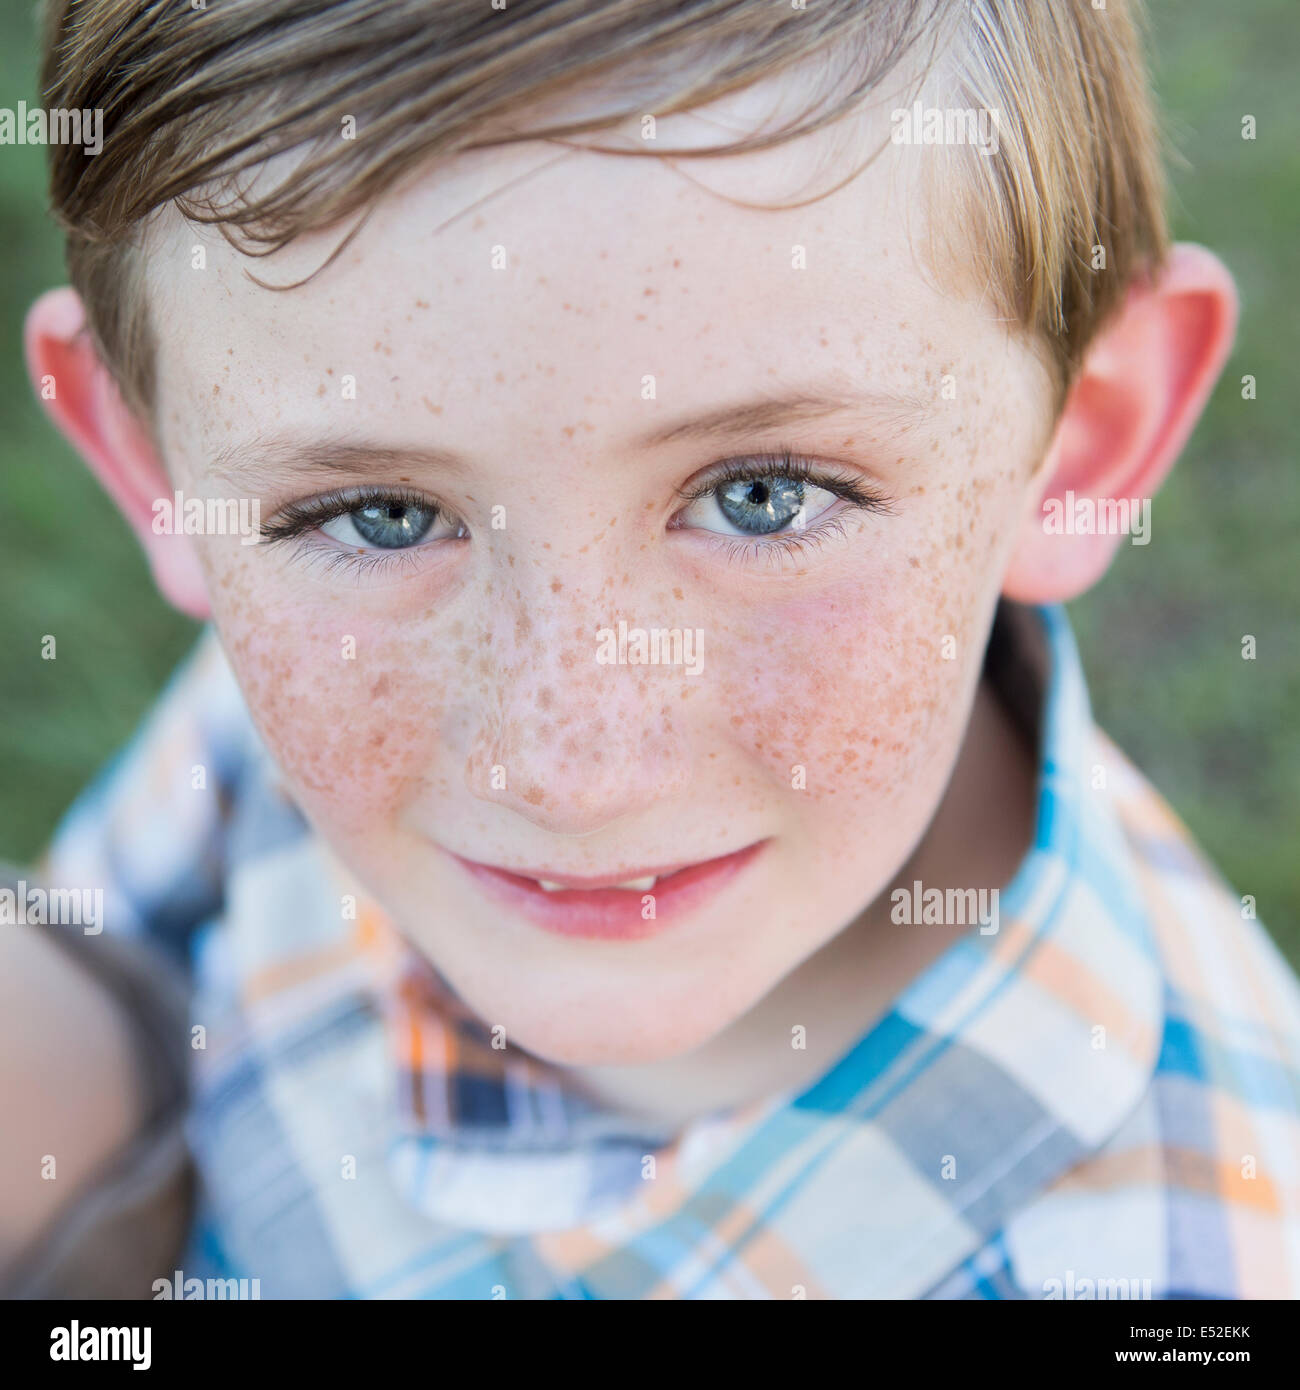 Portrait of a young boy with blue eyes and freckles on his nose. - Stock Image